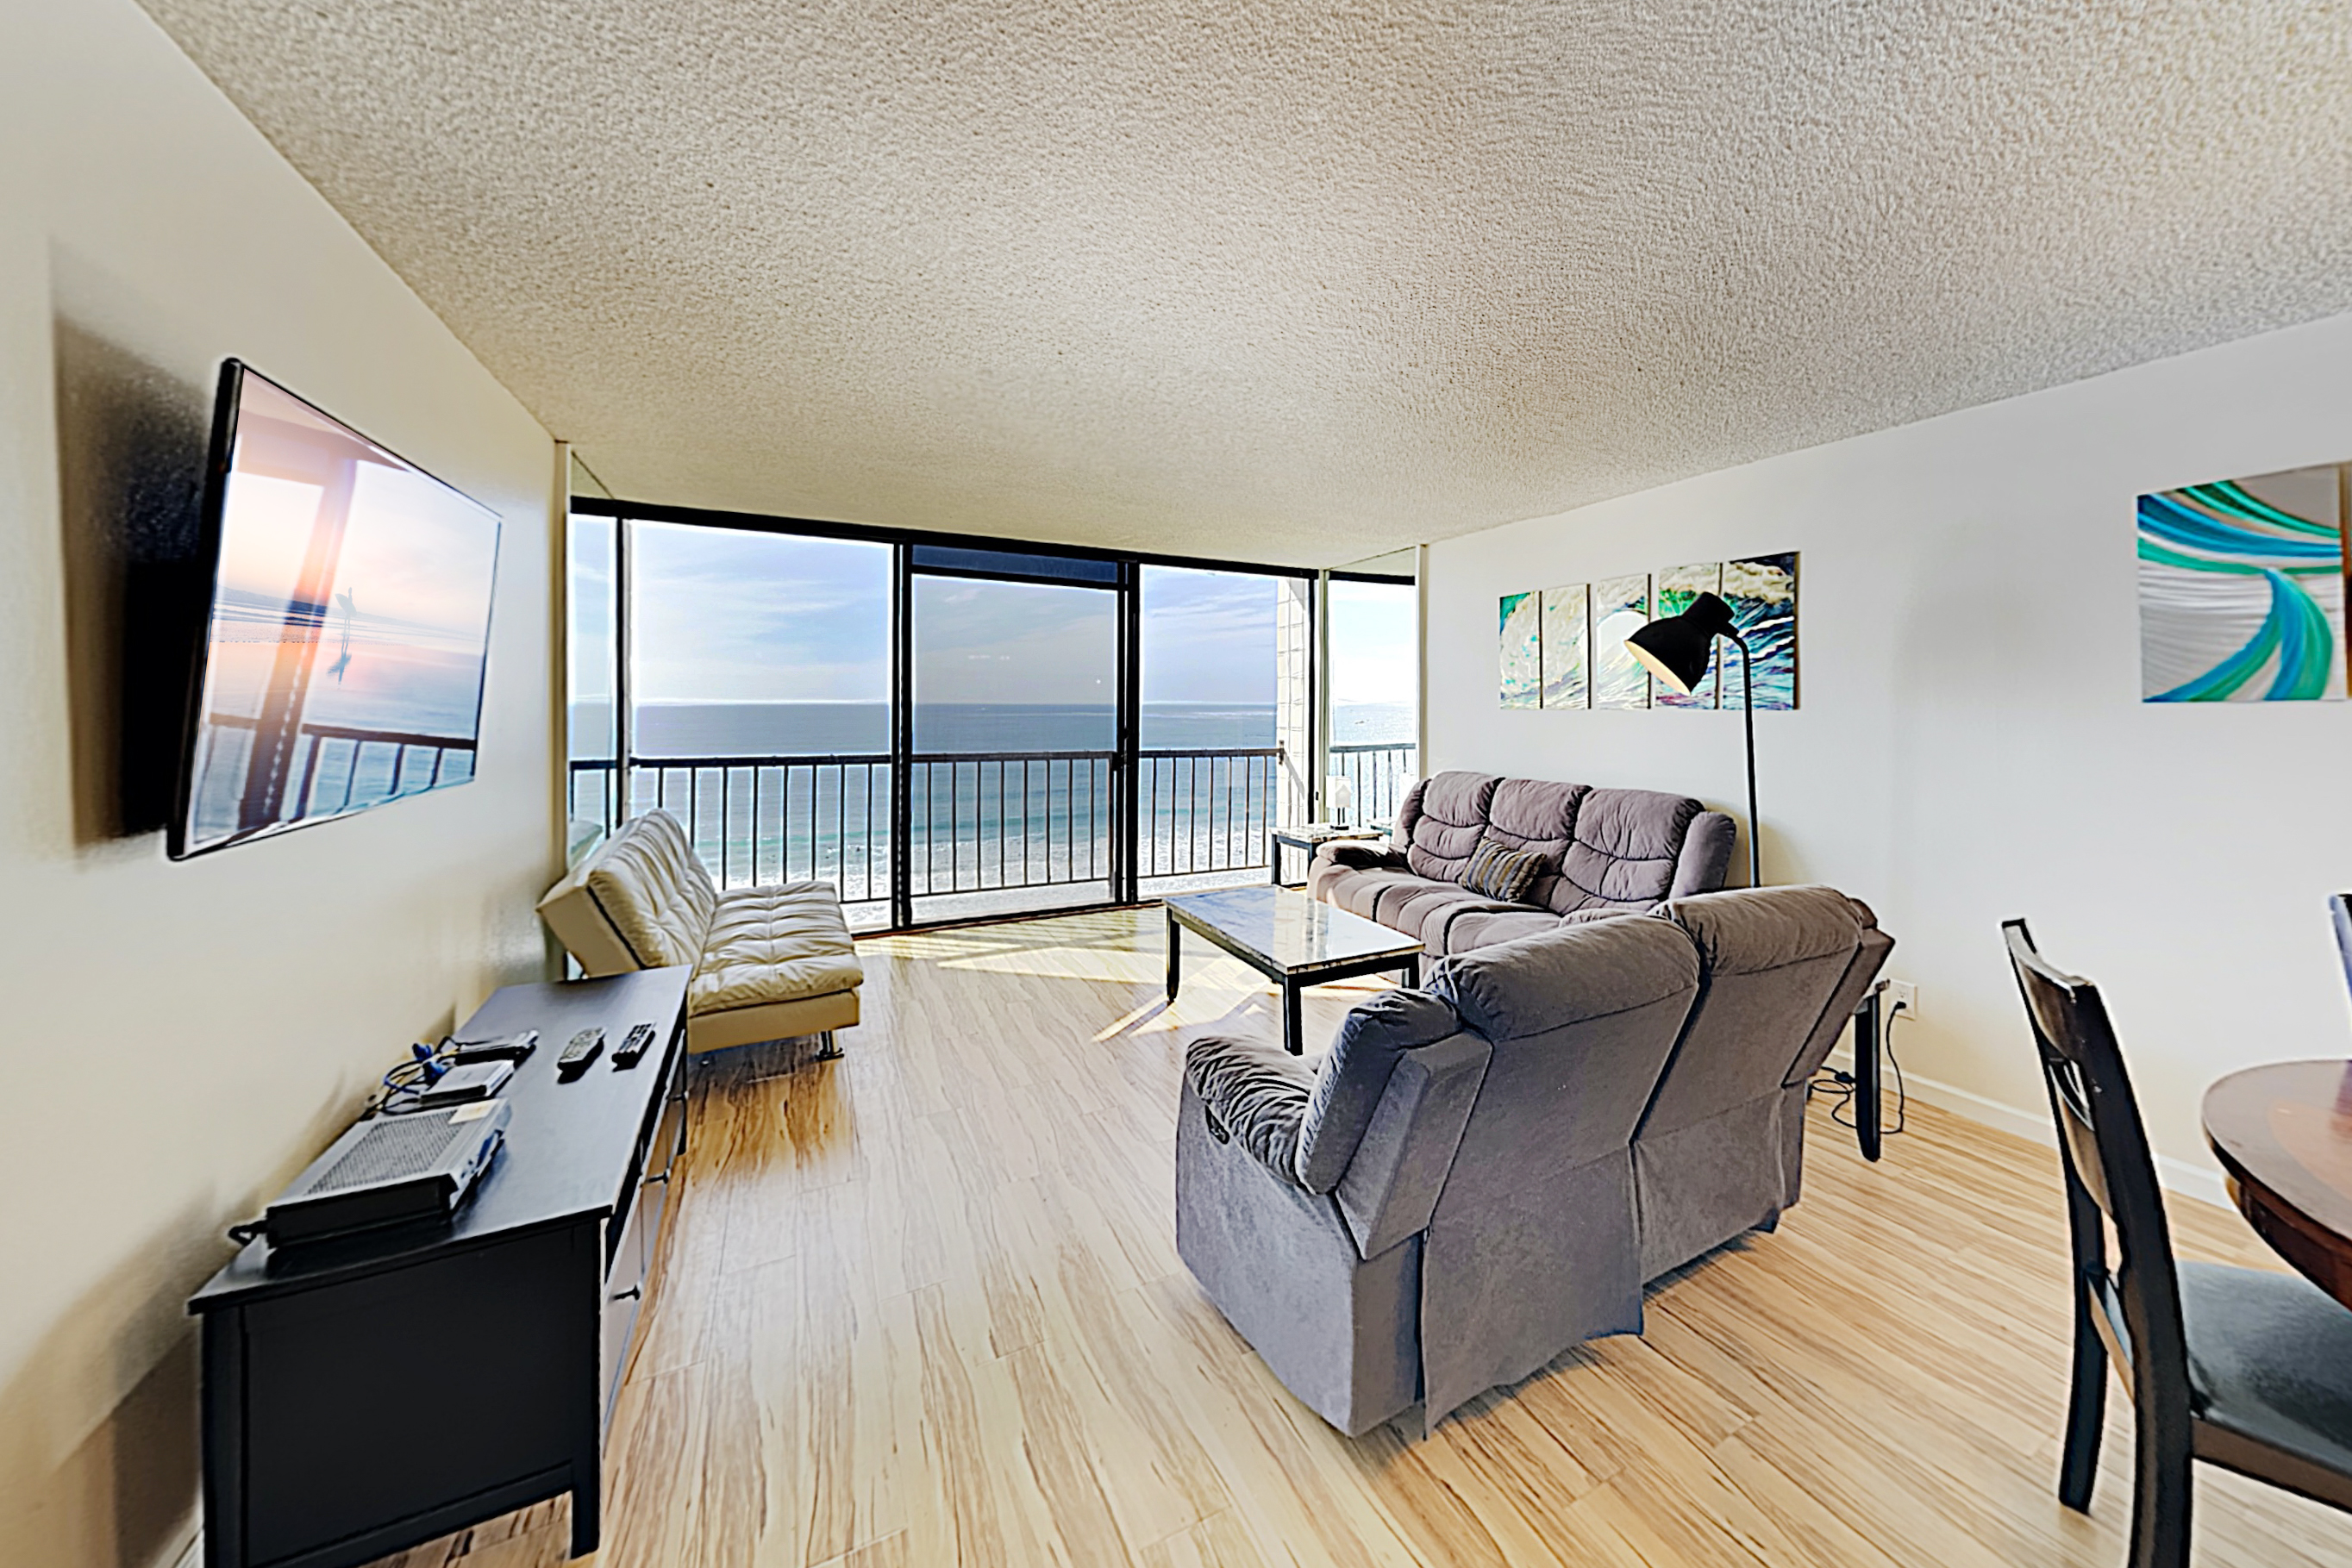 San Diego CA Vacation Rental Welcome! This Pacific